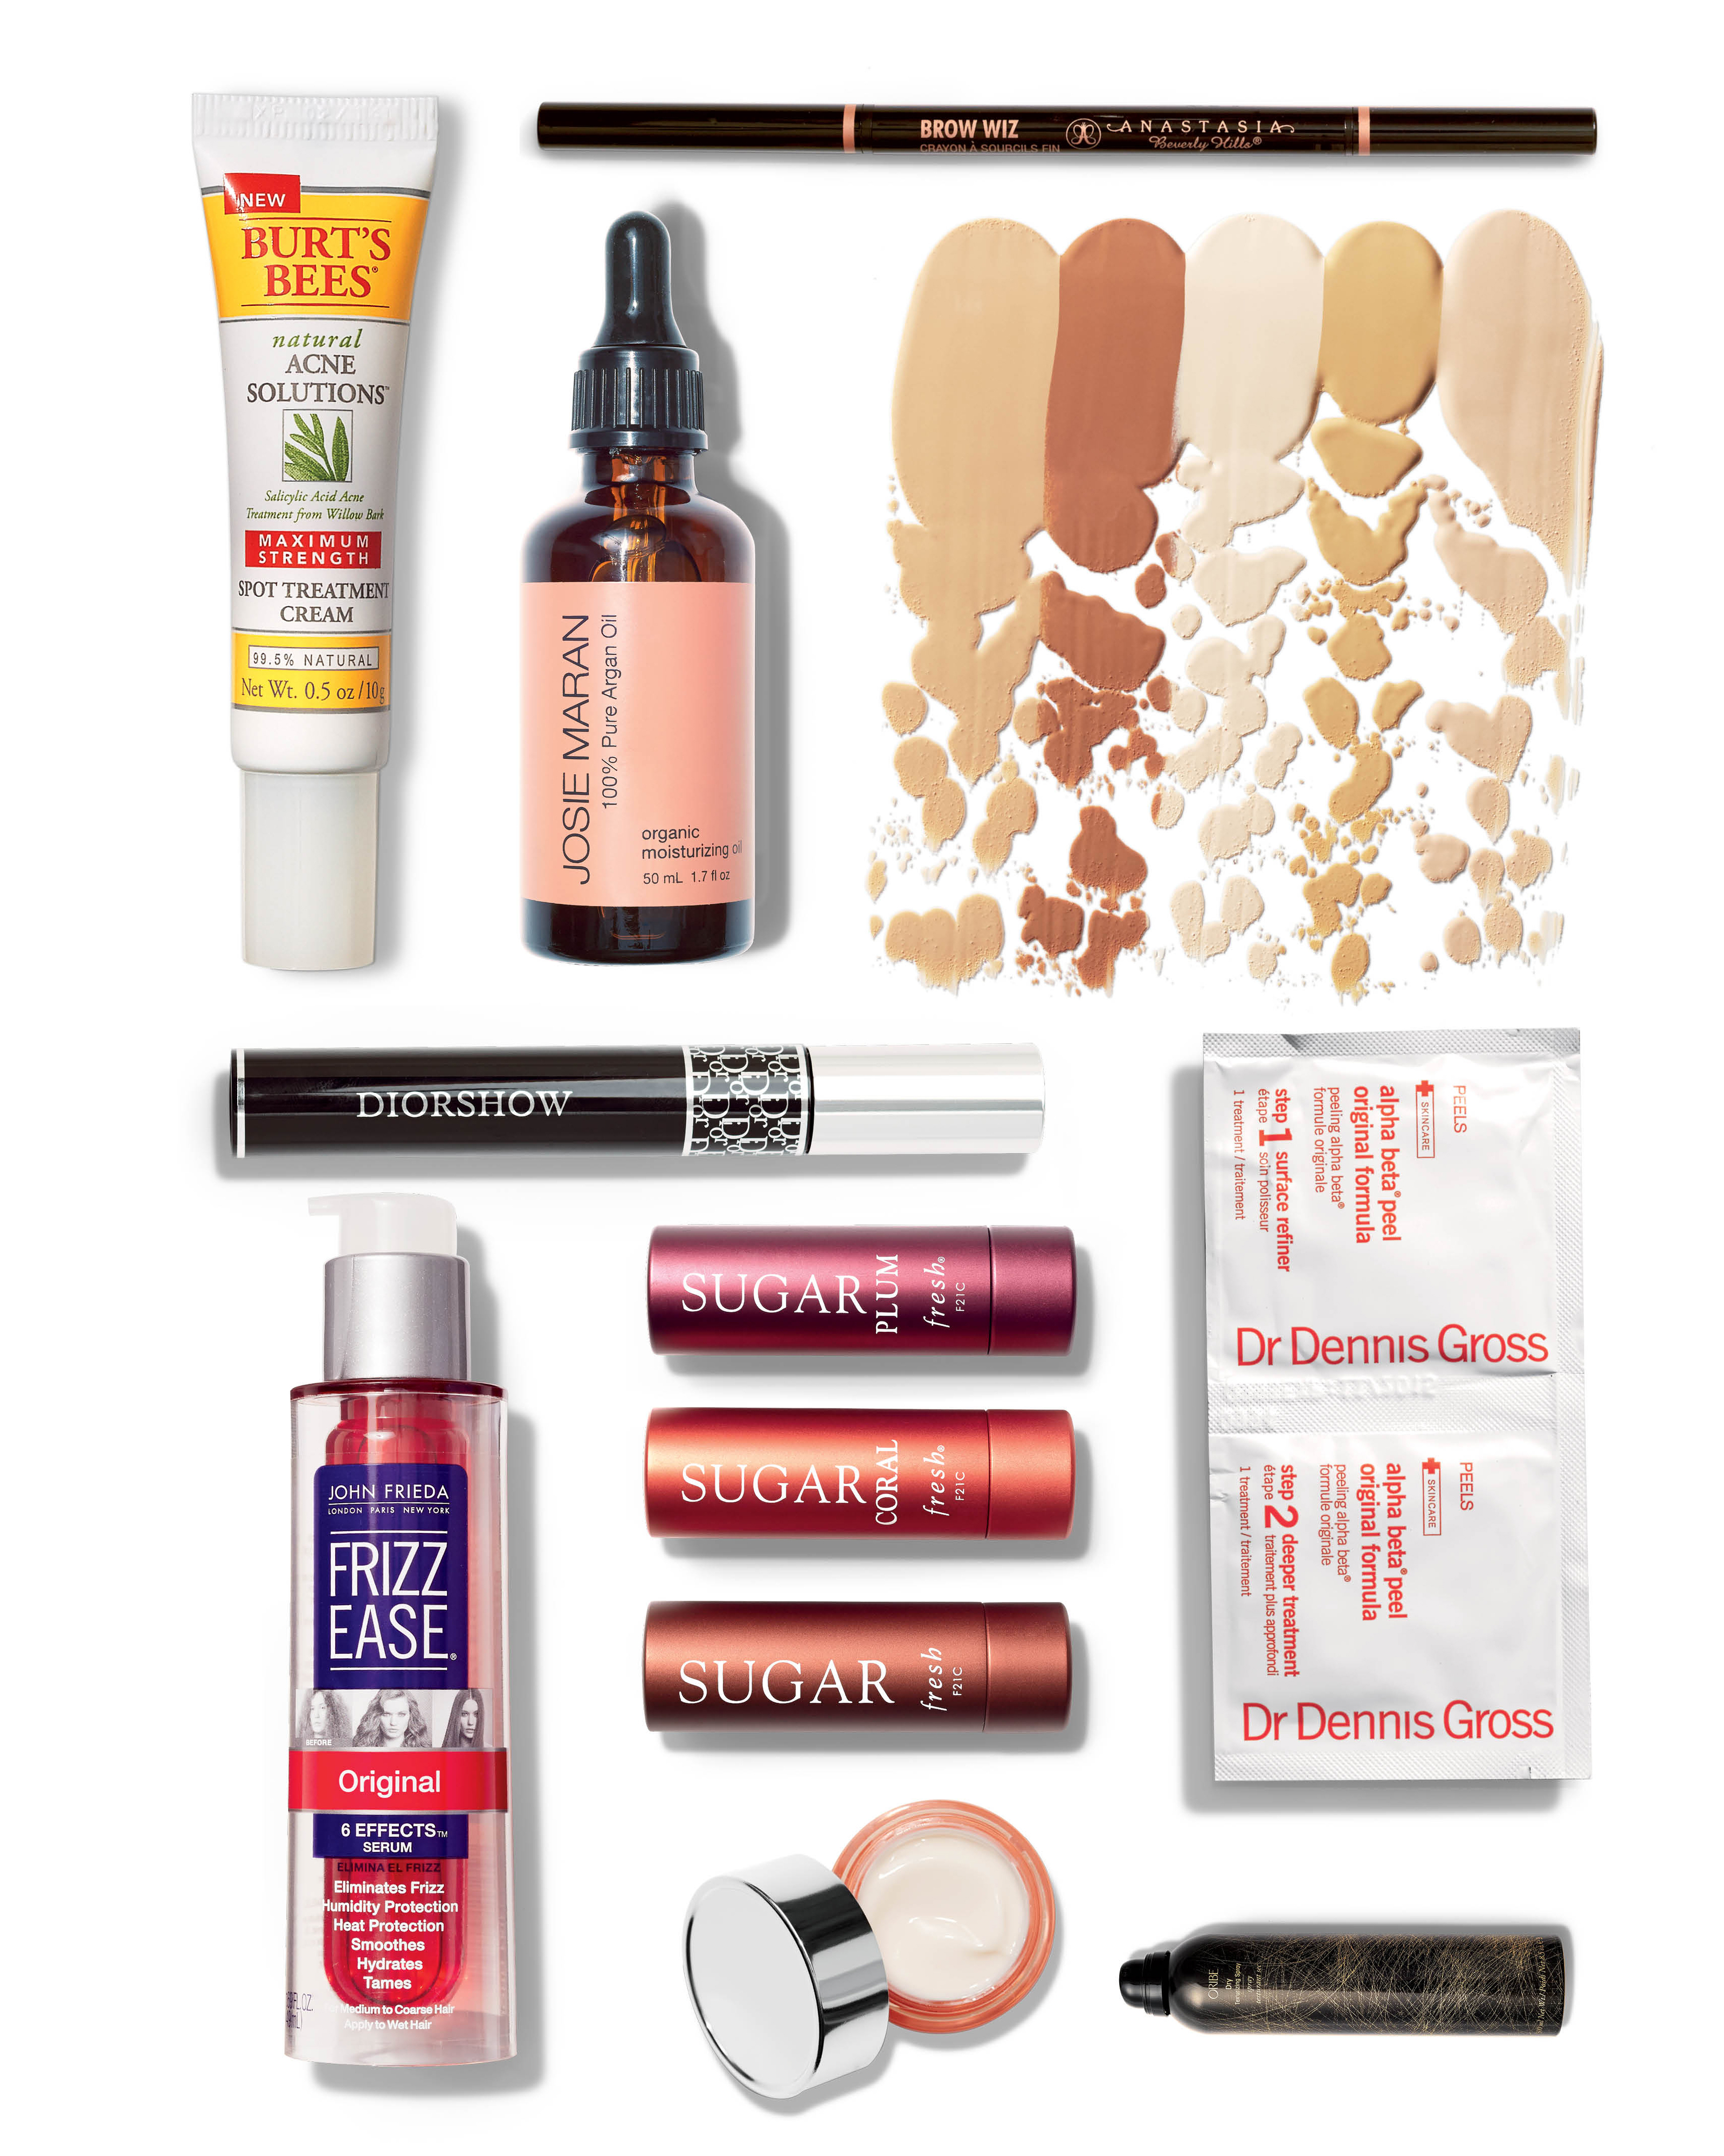 big-day-beauty-product-collage1-2015-0315.jpg